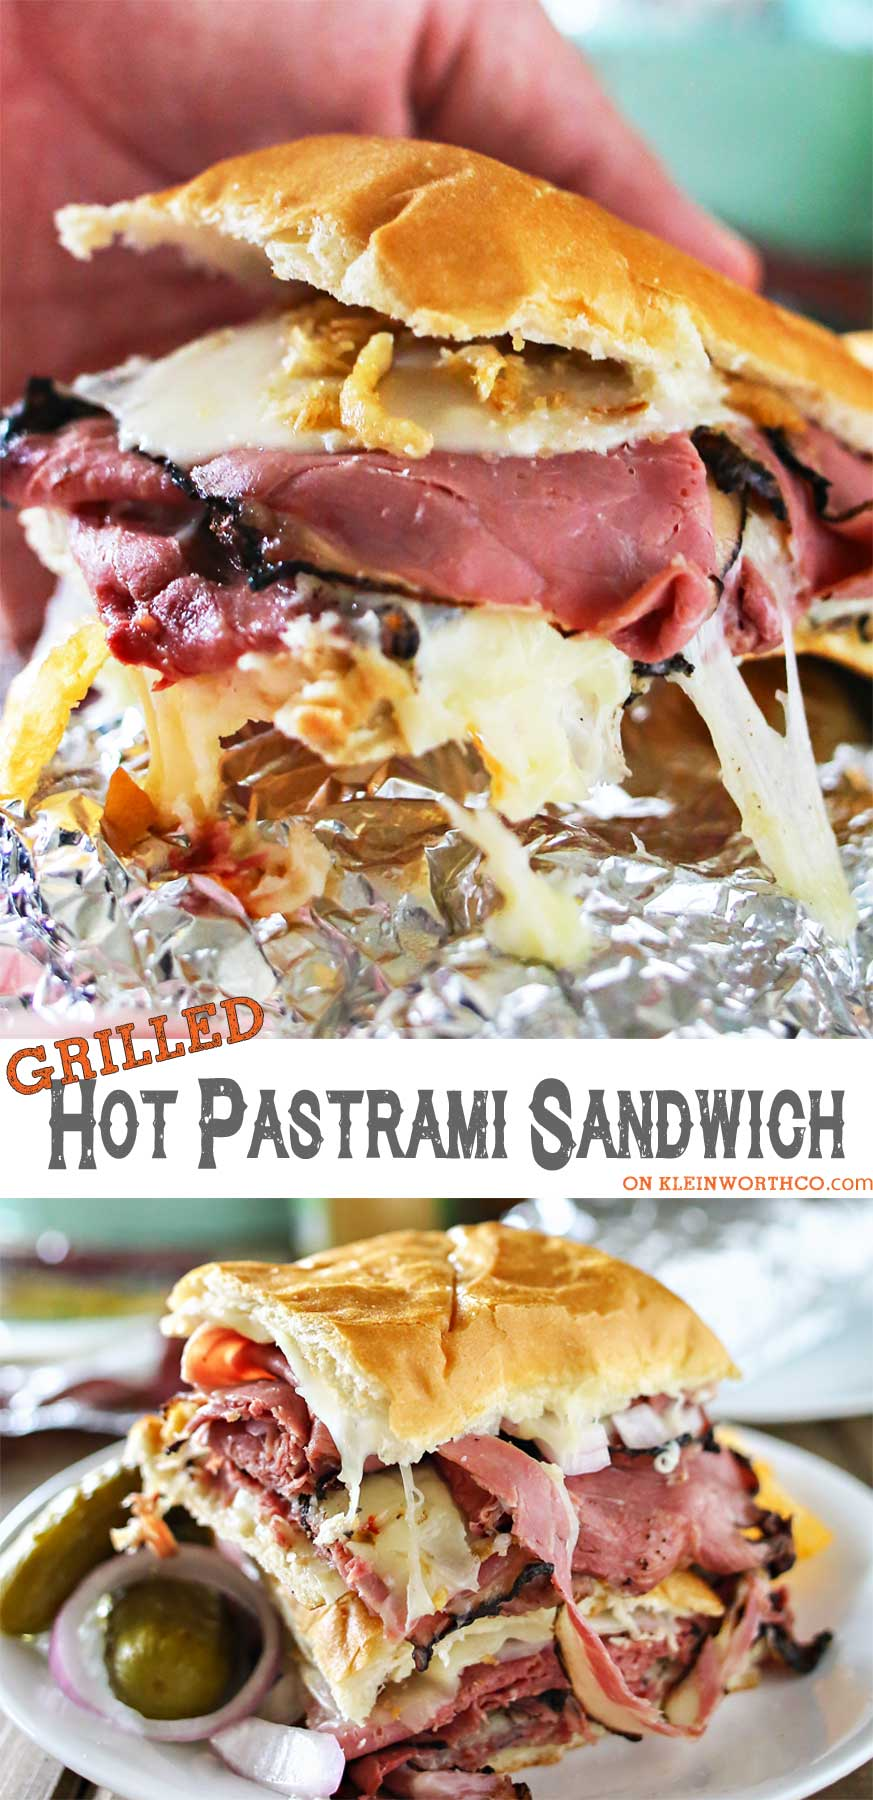 Grilled Hot Pastrami Sandwich combining foil grilling & the love for a pastrami sandwich!